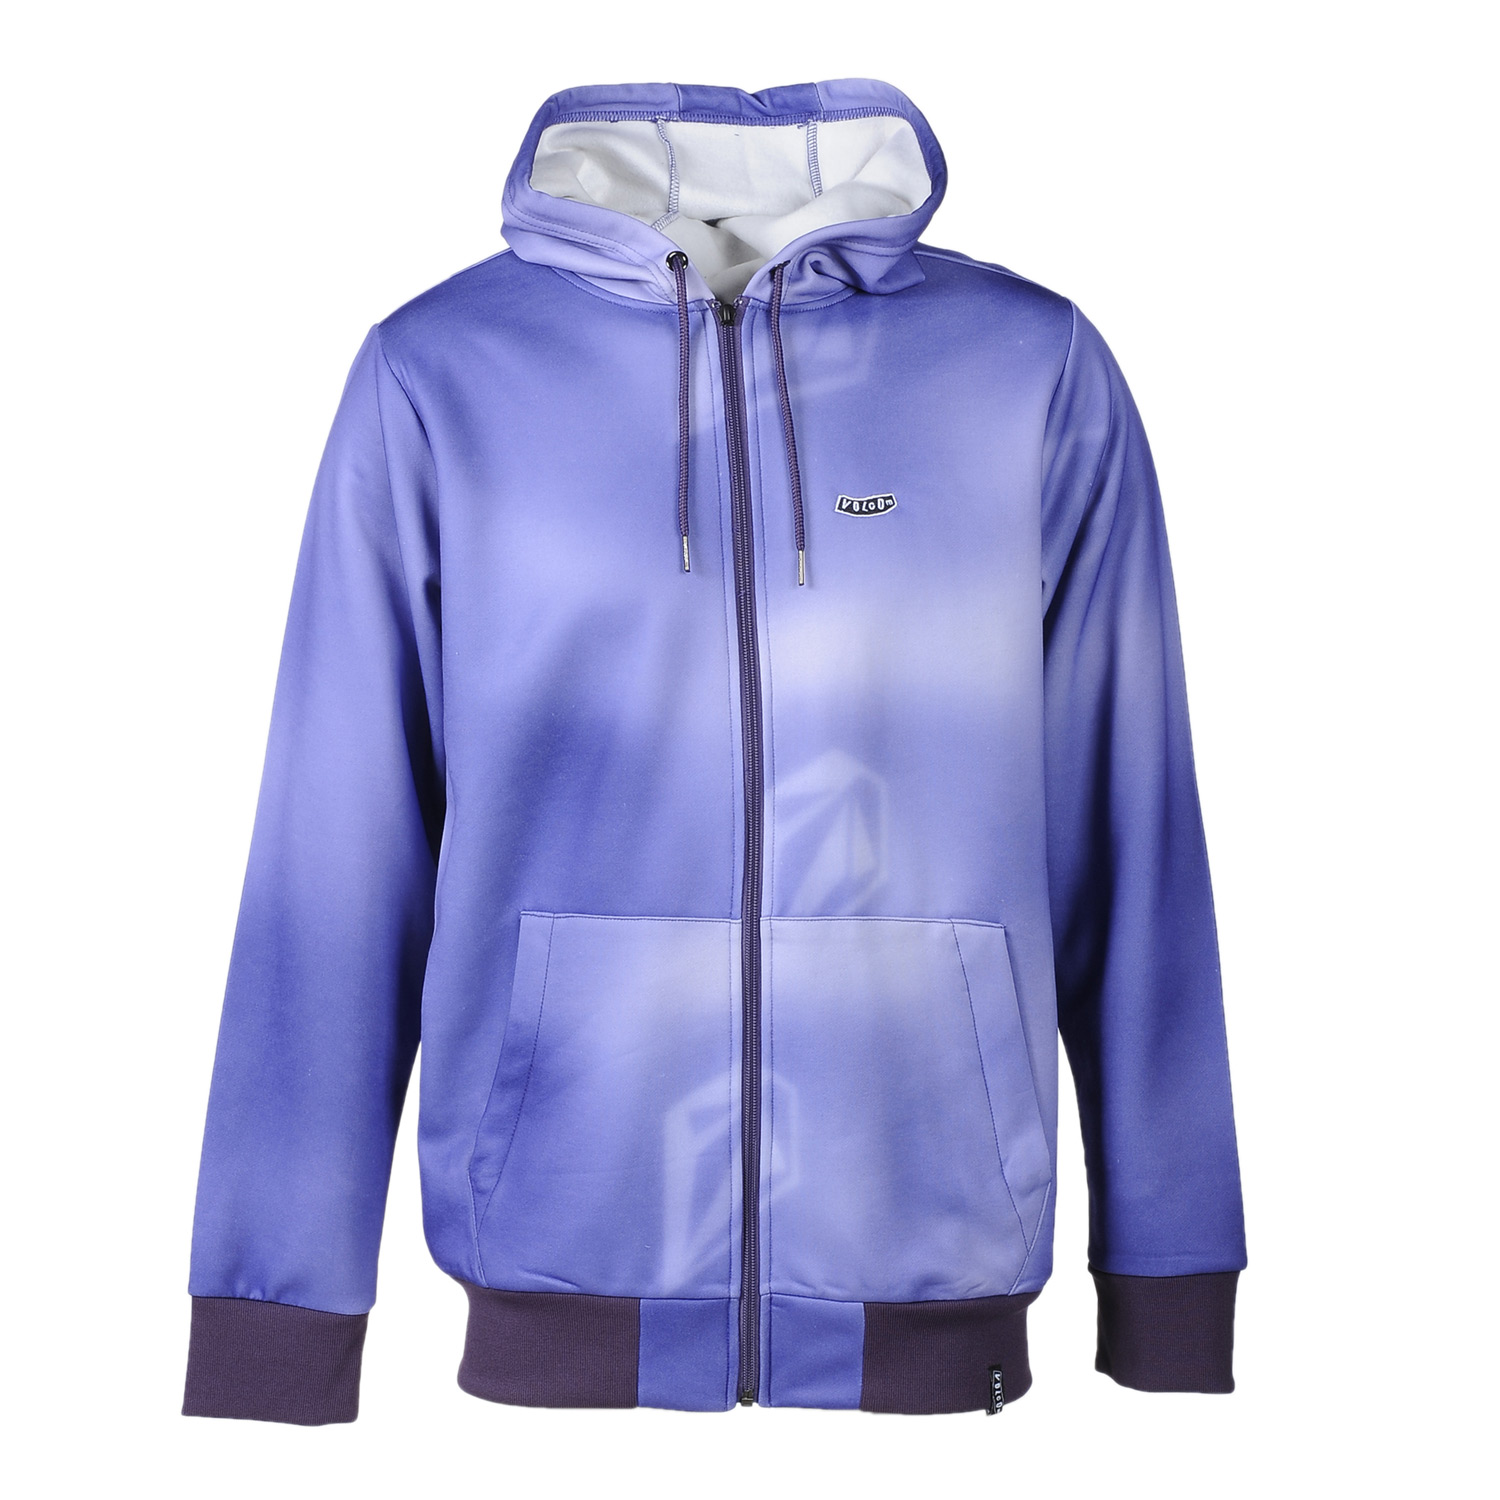 Surf Key Features of the Volcom Chiller Hydro Fleece Hoodie: 280Gm Hydro Fleece Standard Fit Zippered Hand Pockets Drawcord Hood Cinch Whistle Zipper Pull Stone Woven Label Volcom Pistol Embroidery - $44.95